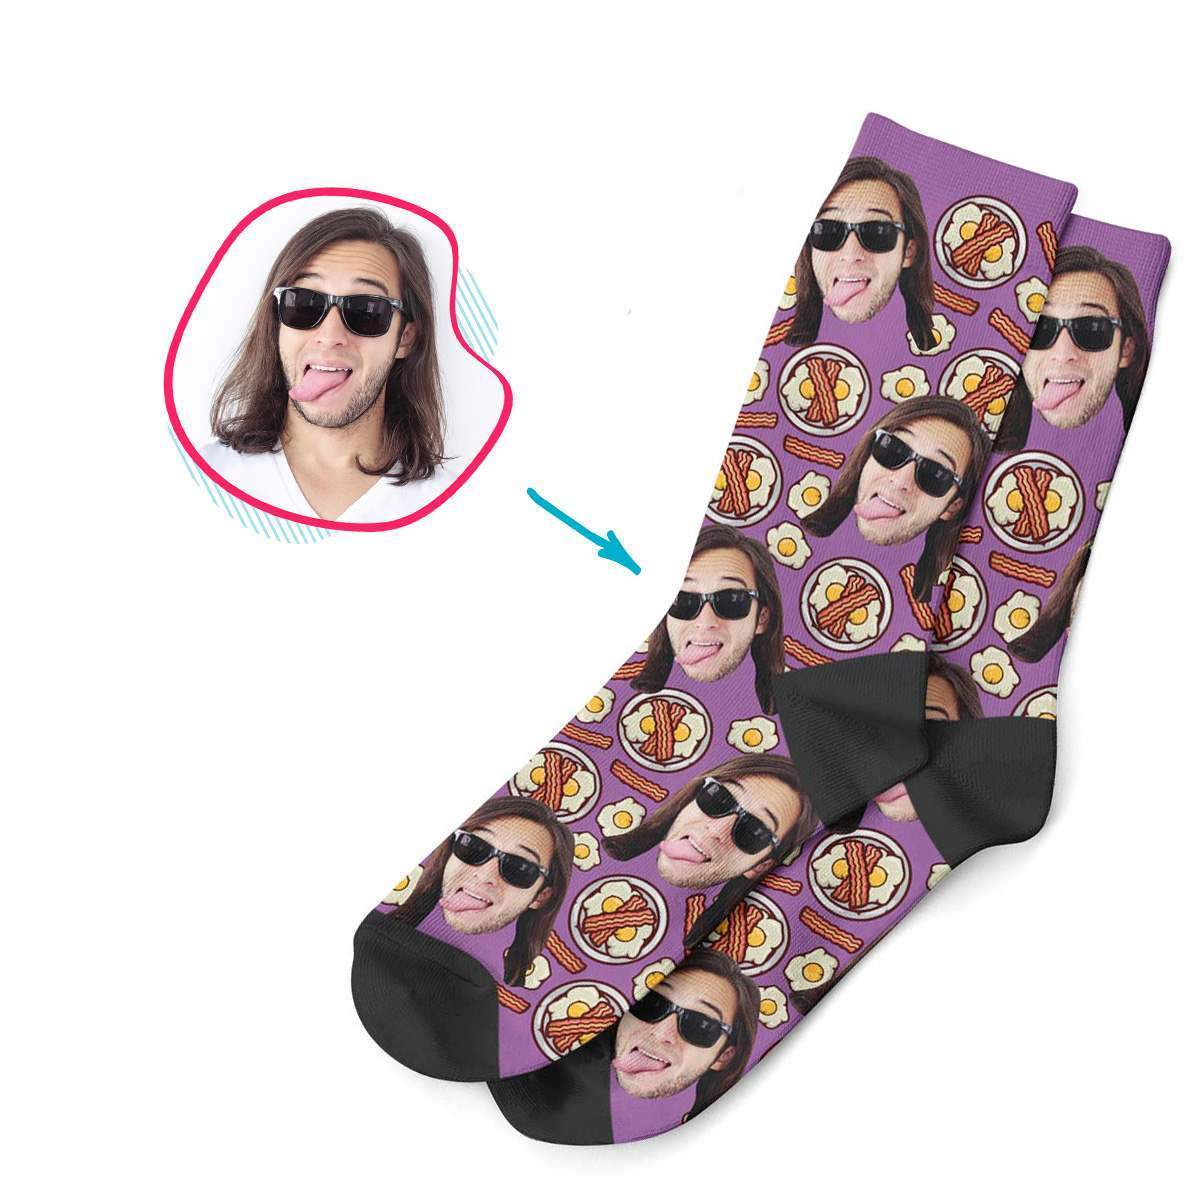 purple Bacon and Eggs socks personalized with photo of face printed on them